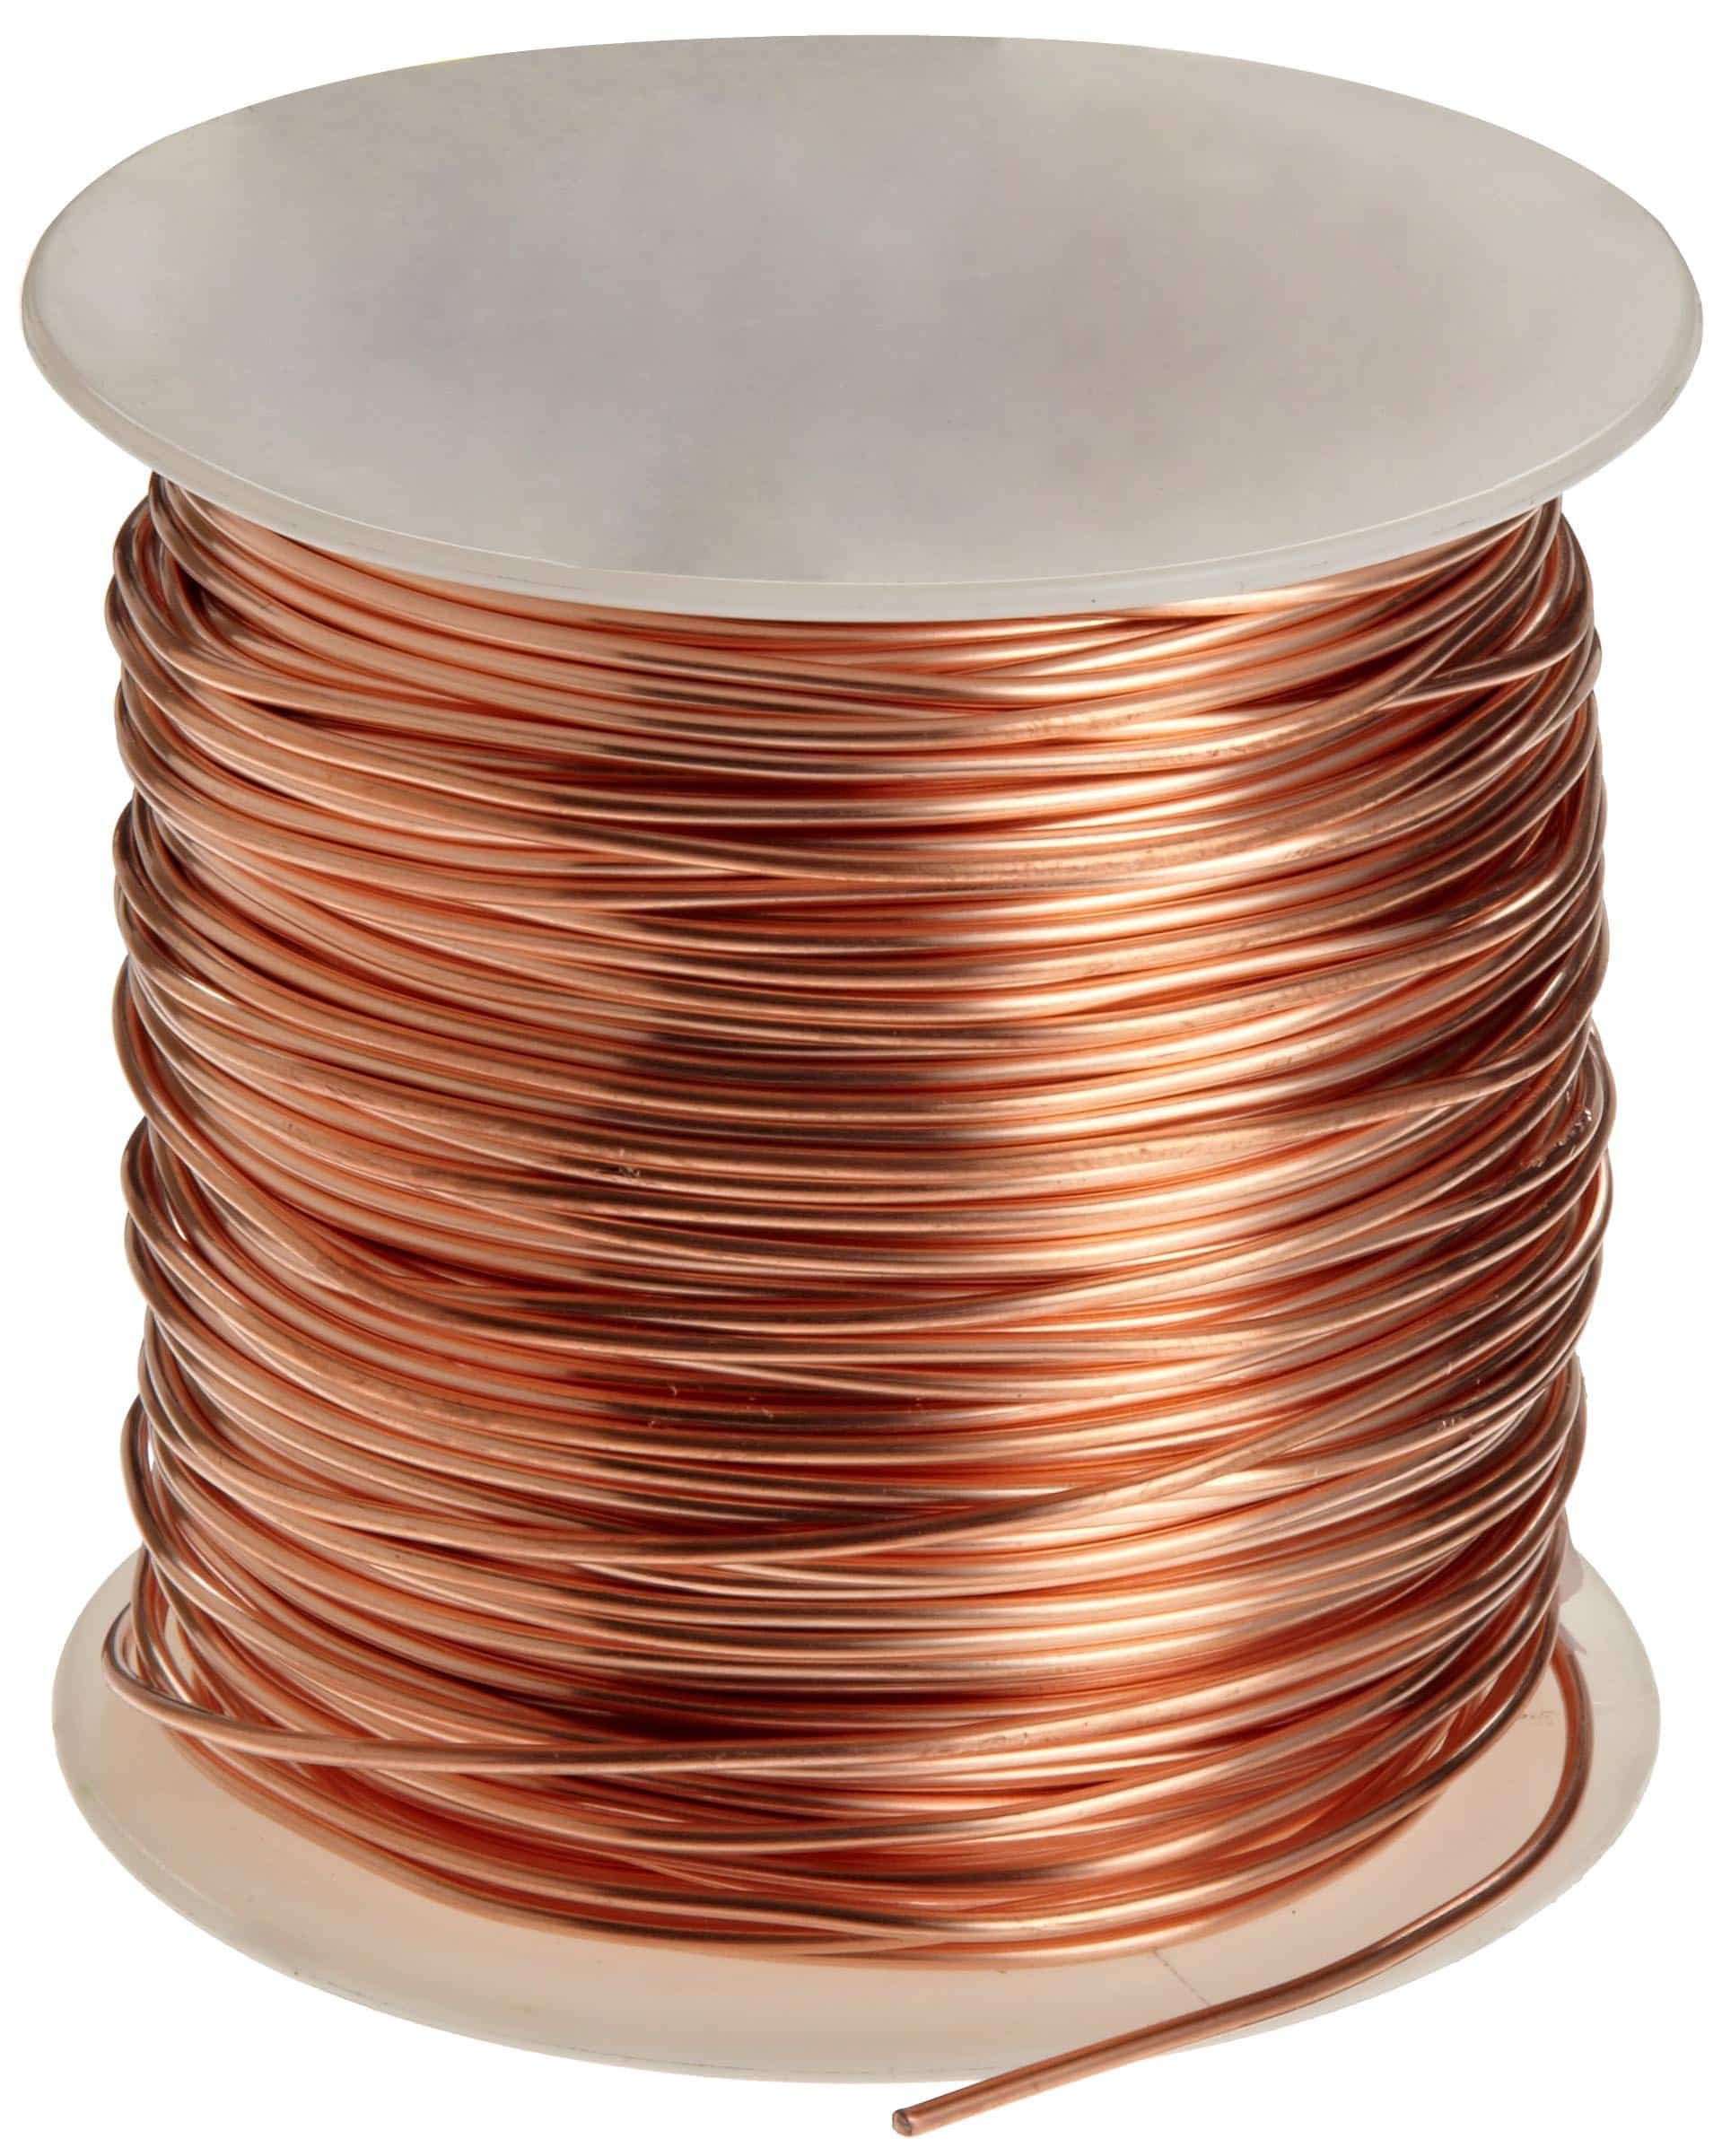 Copper Electrical Wire : Premium solid copper wire